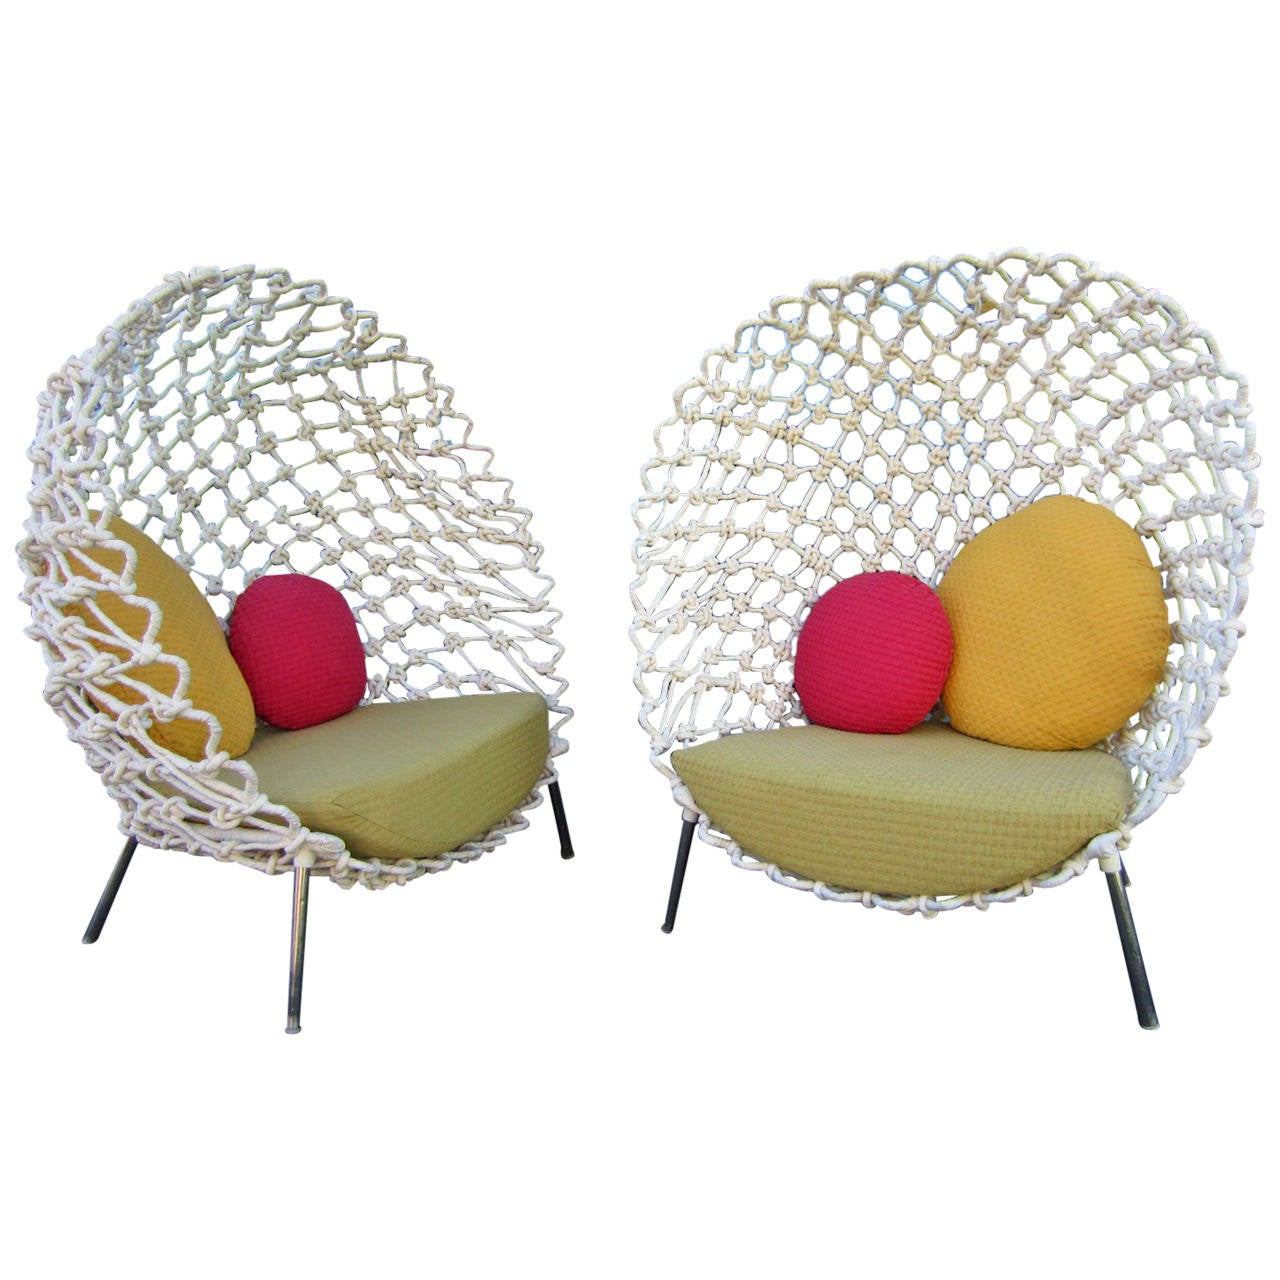 Kenneth cobonpue furniture Lamp Designer Kenneth Cobonpue Dragnet Chair Lounge Chairs In White For Sale Jedi News Designer Kenneth Cobonpue Dragnet Chair Lounge Chairs In White At